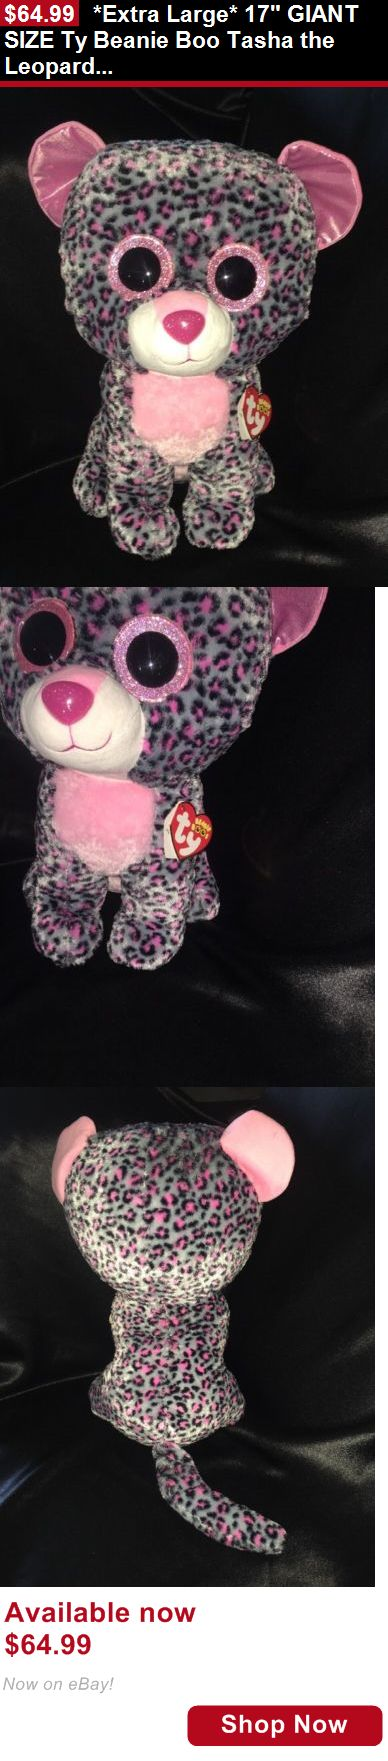 Binocular Cases And Accessories: *Extra Large* 17 Giant Size Ty Beanie Boo Tasha The Leopard New W/Tags BUY IT NOW ONLY: $64.99